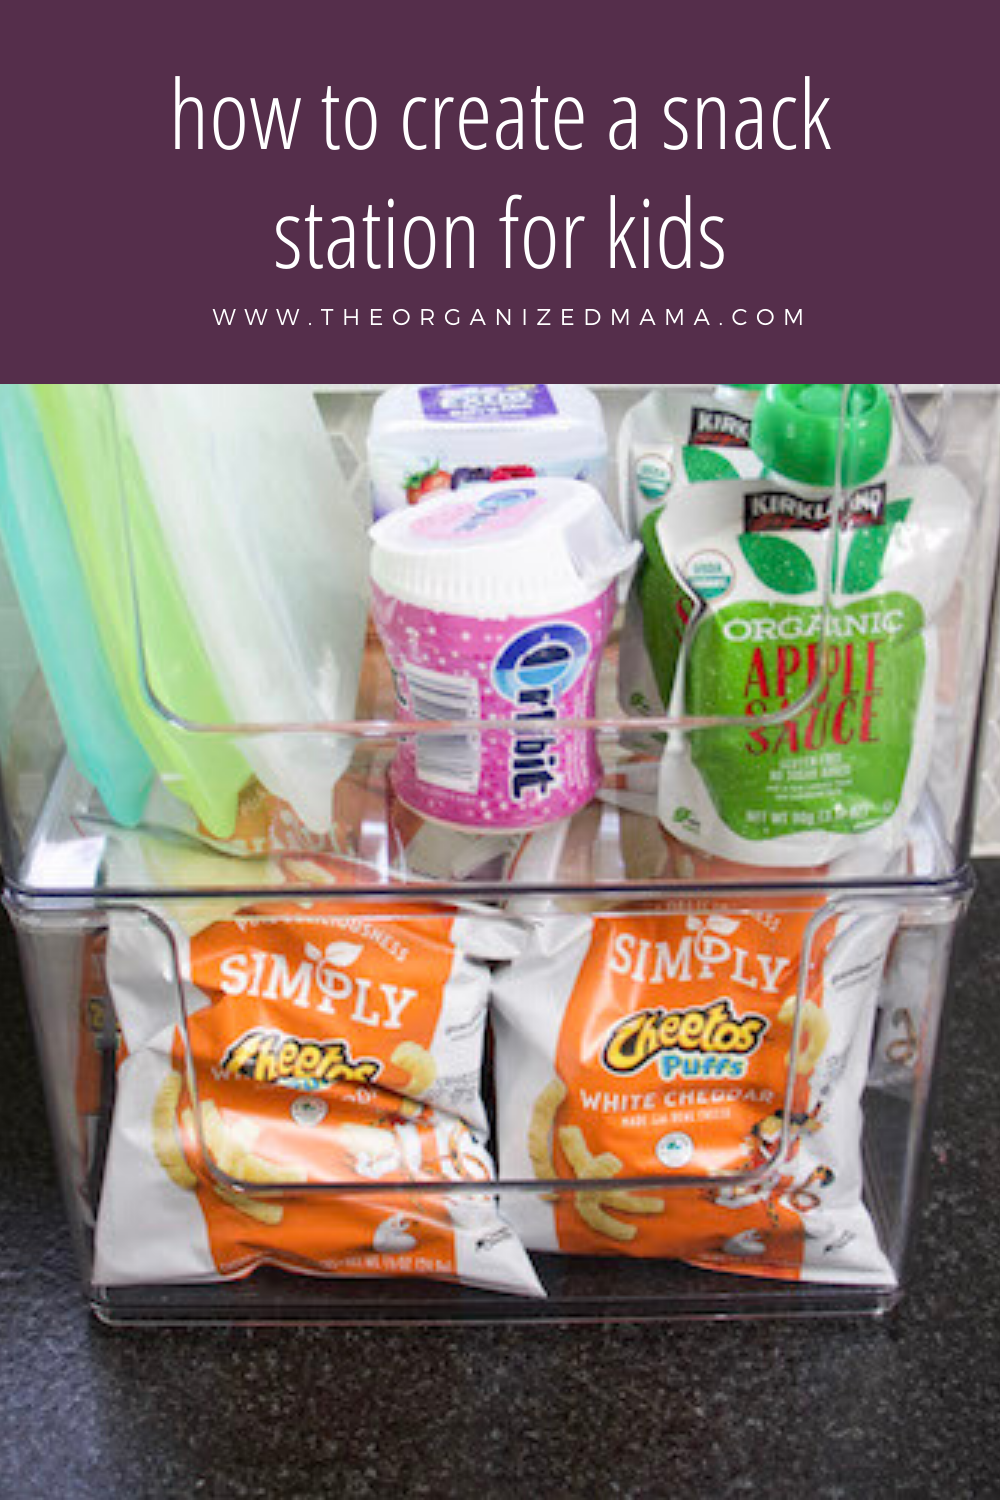 how to create a snack station for kids